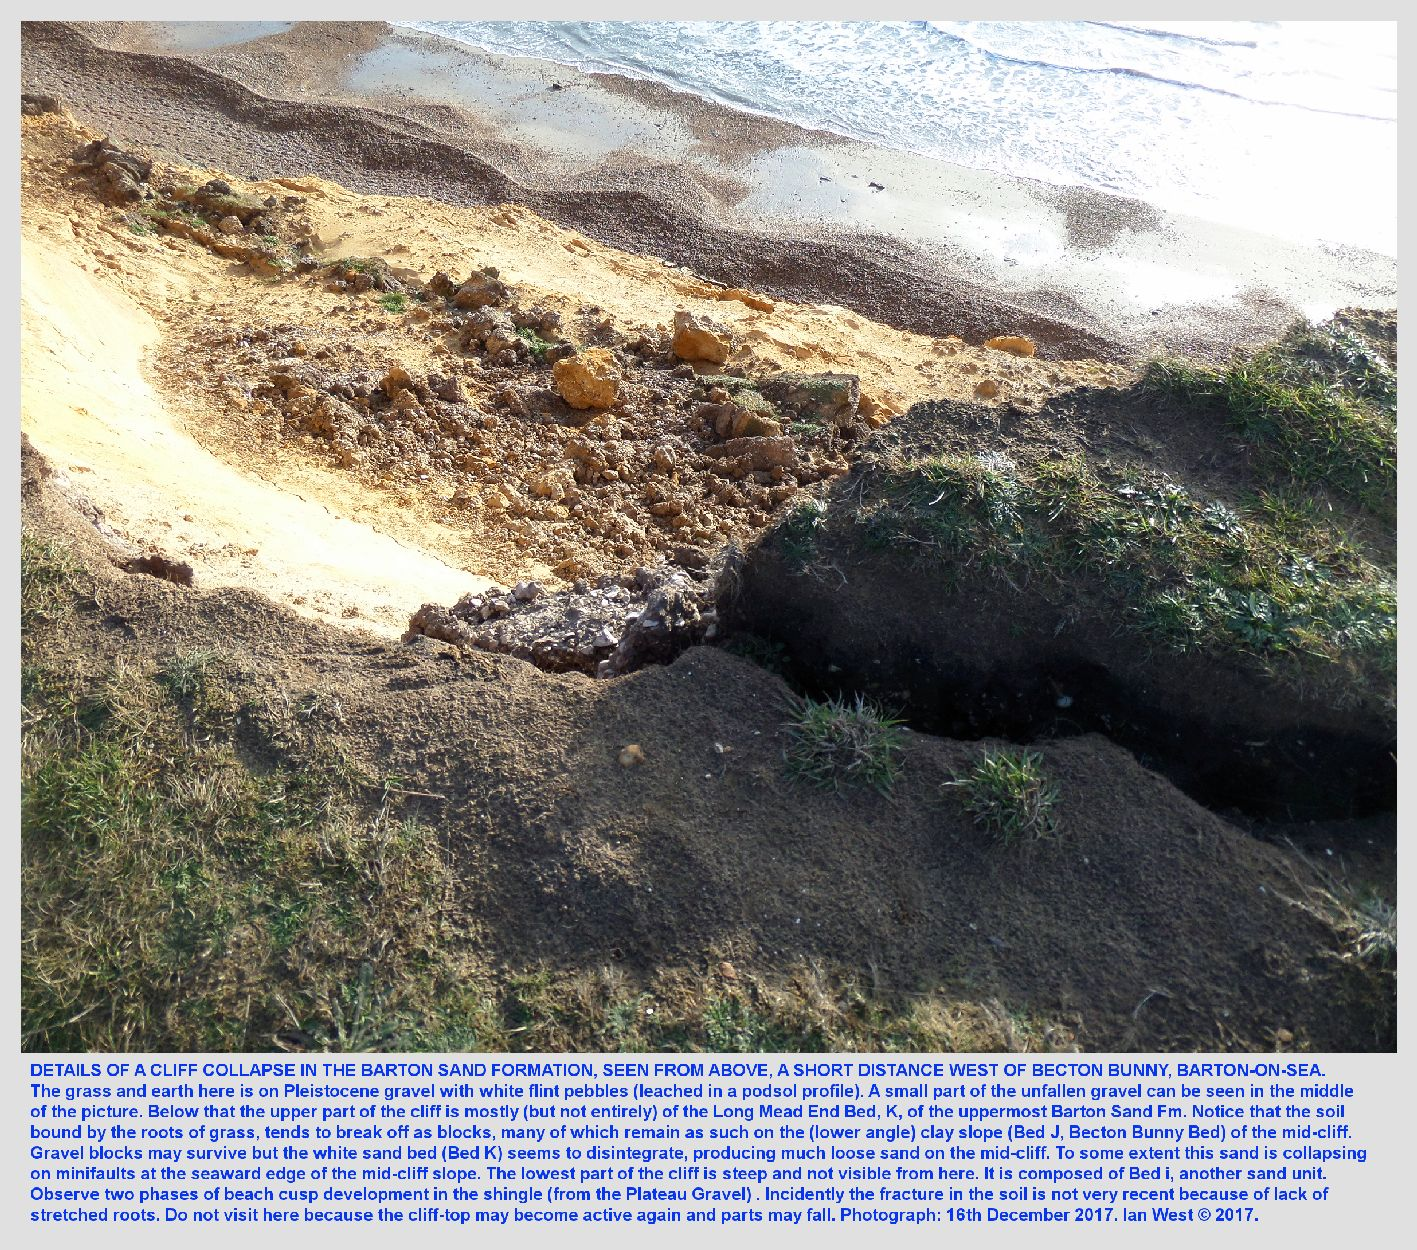 More details, looking down at the eroding cliff edge, near Becton Bunny, at the Terminal Groyne Syndrome area, southeast of Barton-on-Sea, Hampshire, 16th December 2017, Ian West